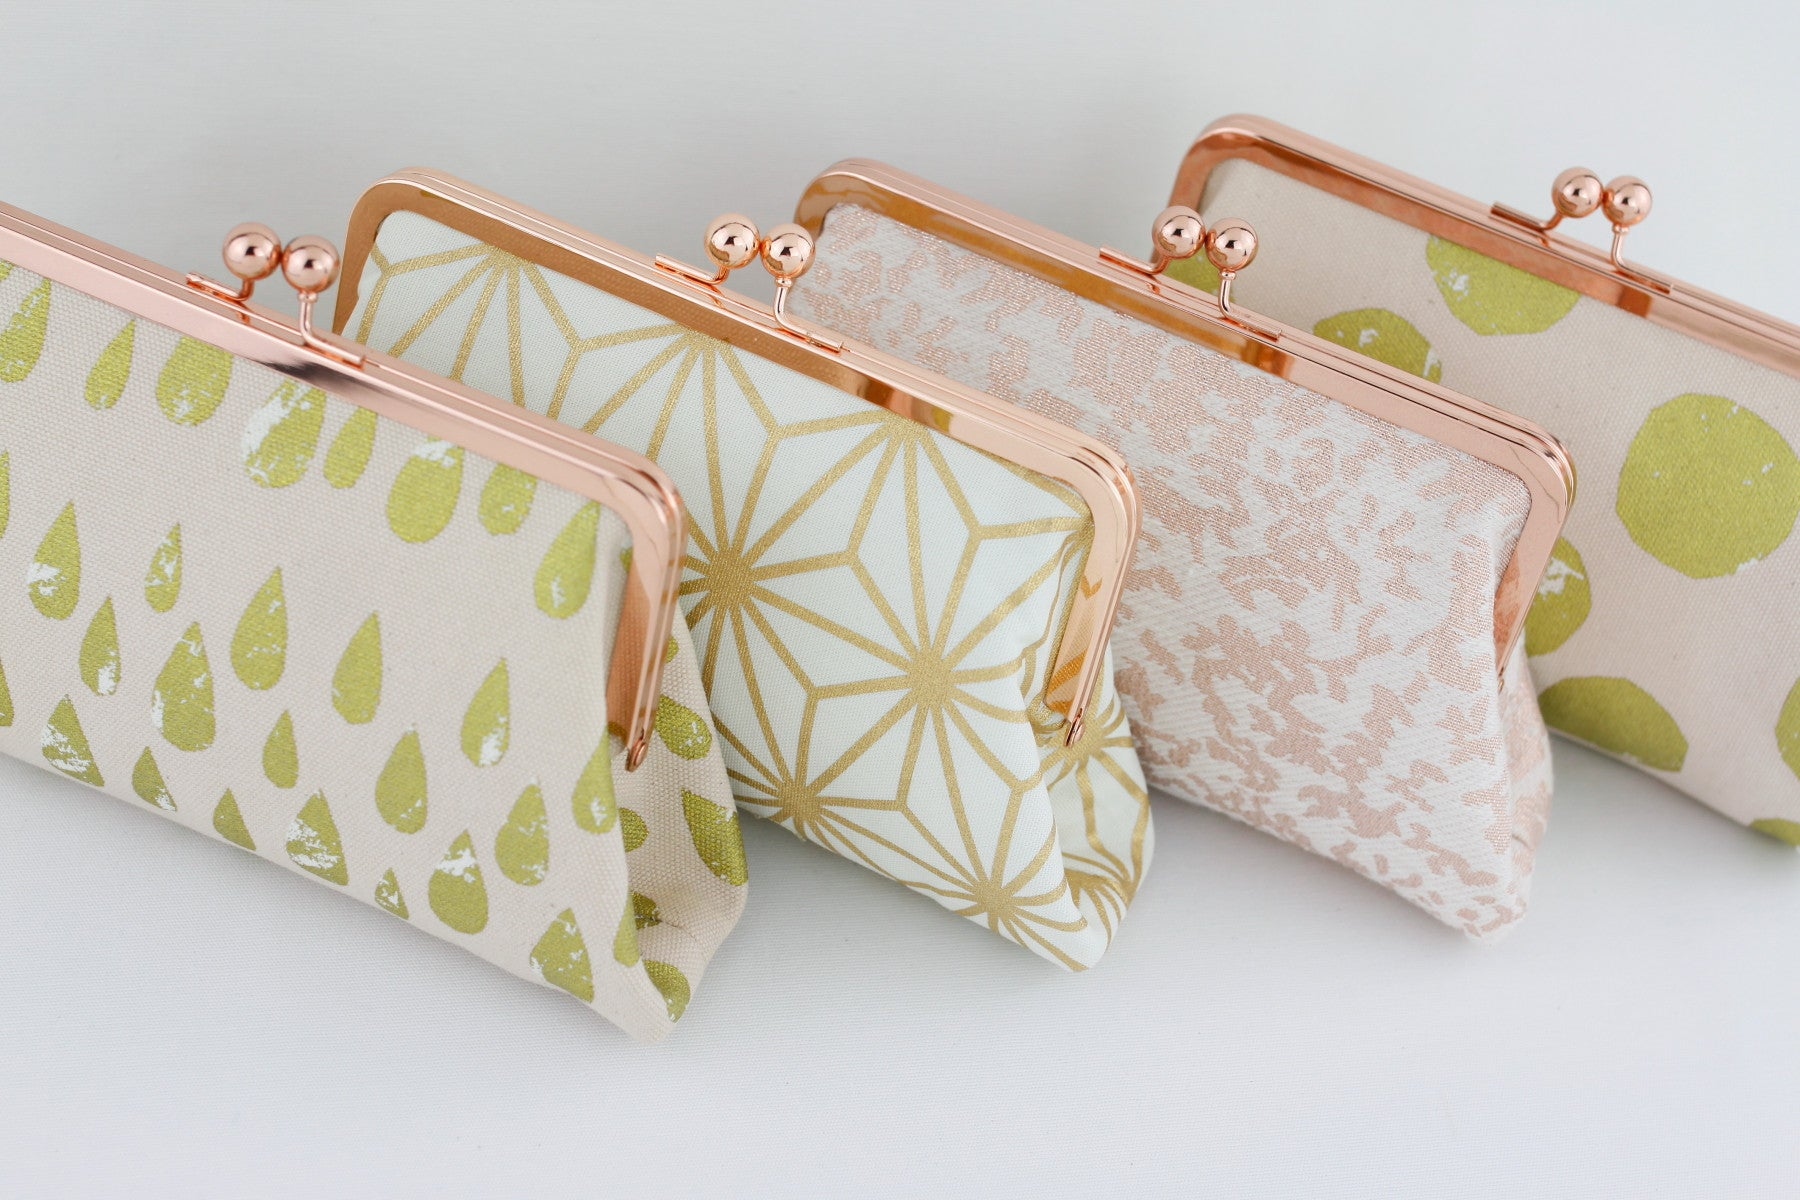 Rose Gold Bridesmaids Clutches, Gift for Wedding | PINKOASIS